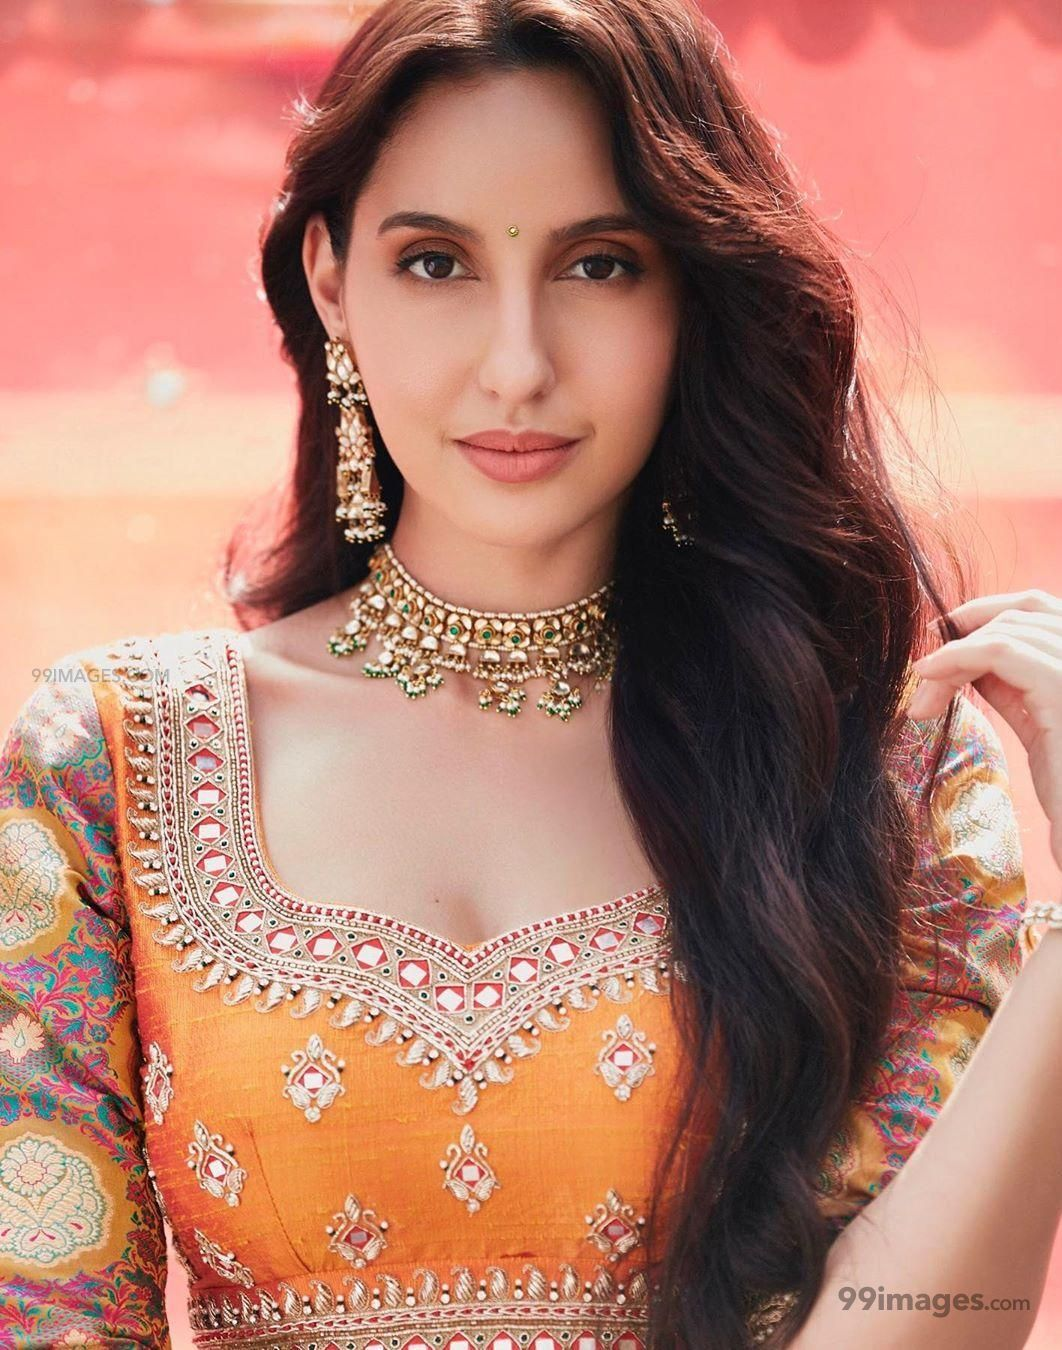 Nora Fatehi Latest Hot HD Photos & Mobile Wallpapers (1080p) (564682) - Nora Fatehi